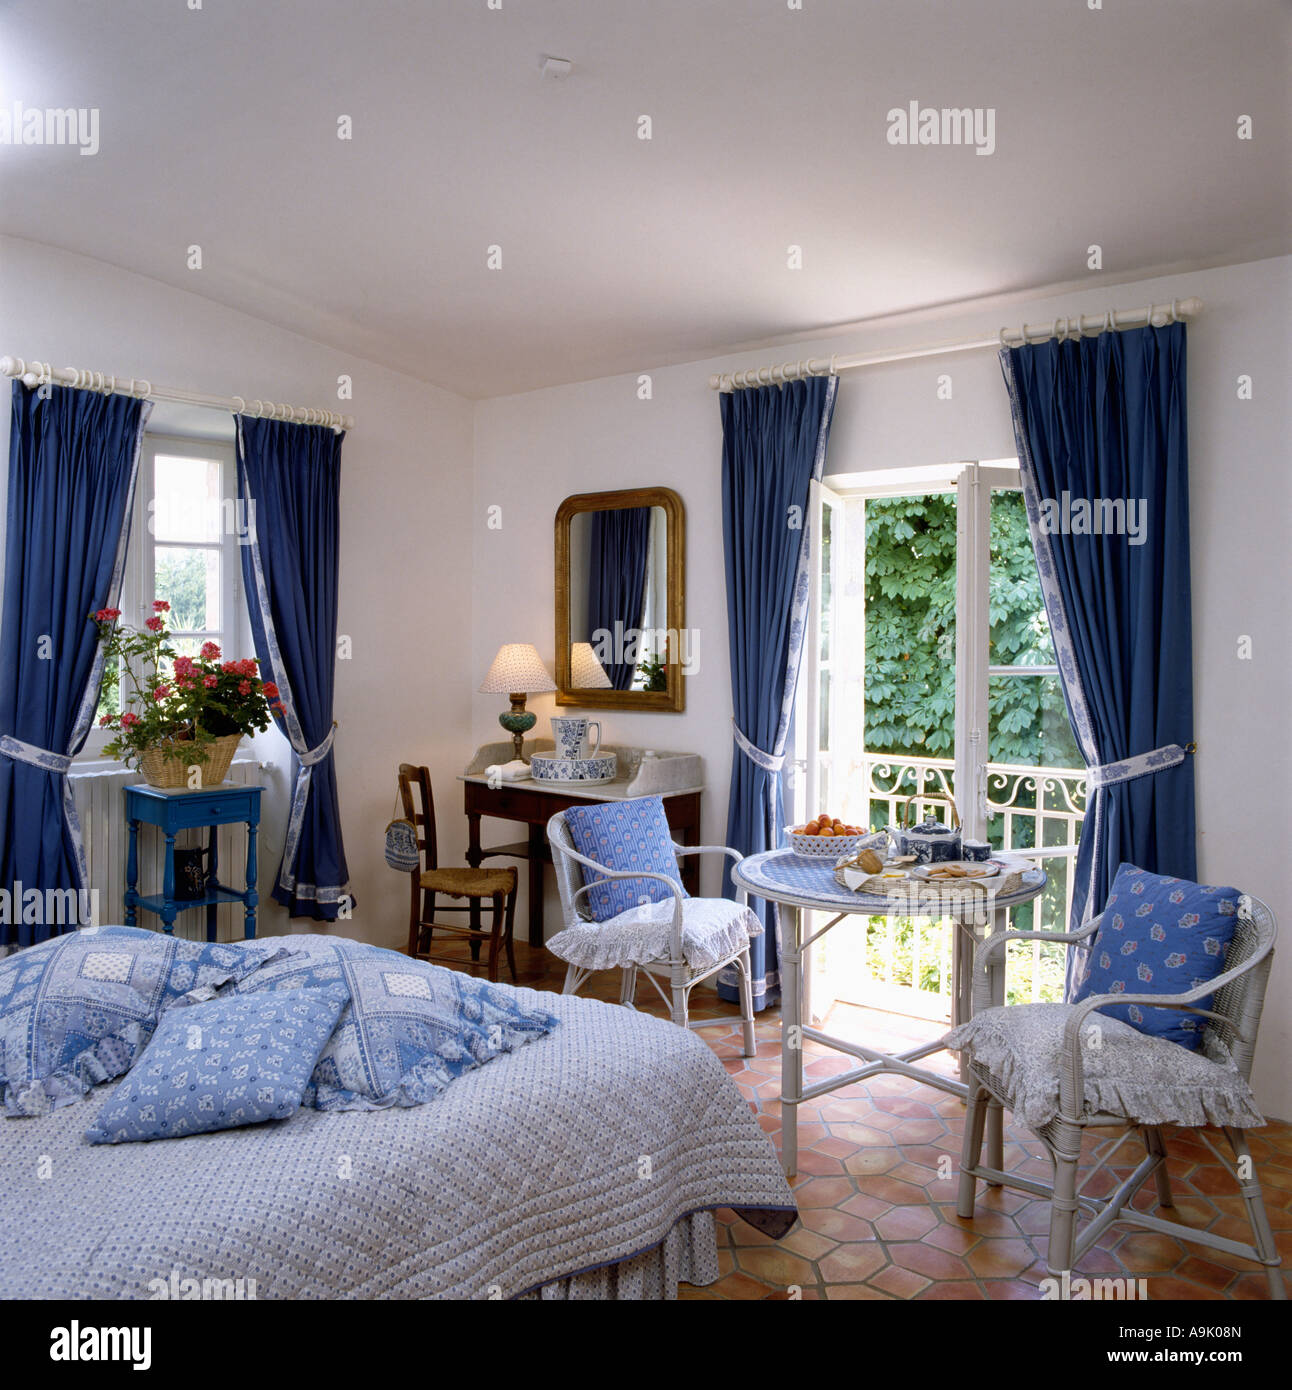 Curtains For A Blue Room Blue Cushions Piled On Bed In Country Bedroom With Blue Curtains